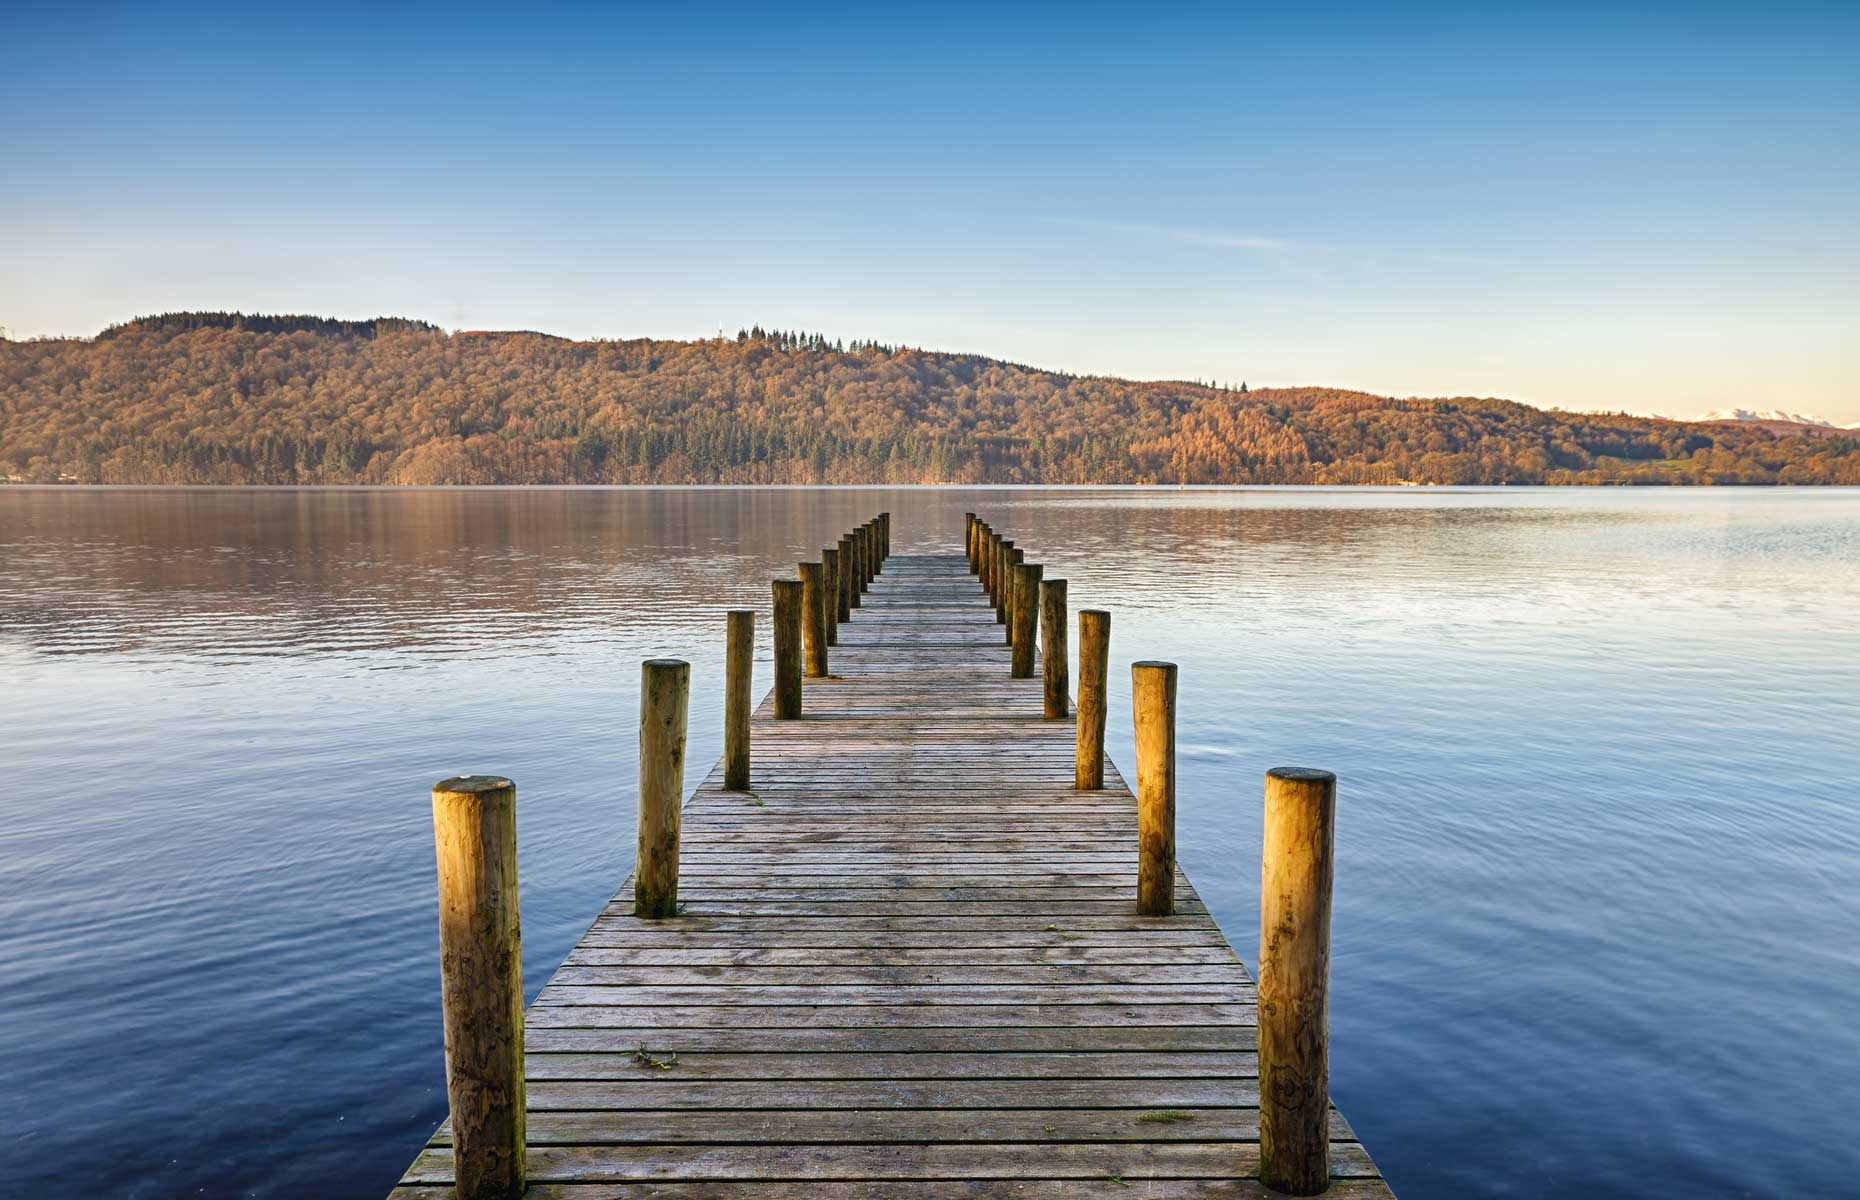 Lake Windermere jetty (Image: Kevin Eaves/Shutterstock)